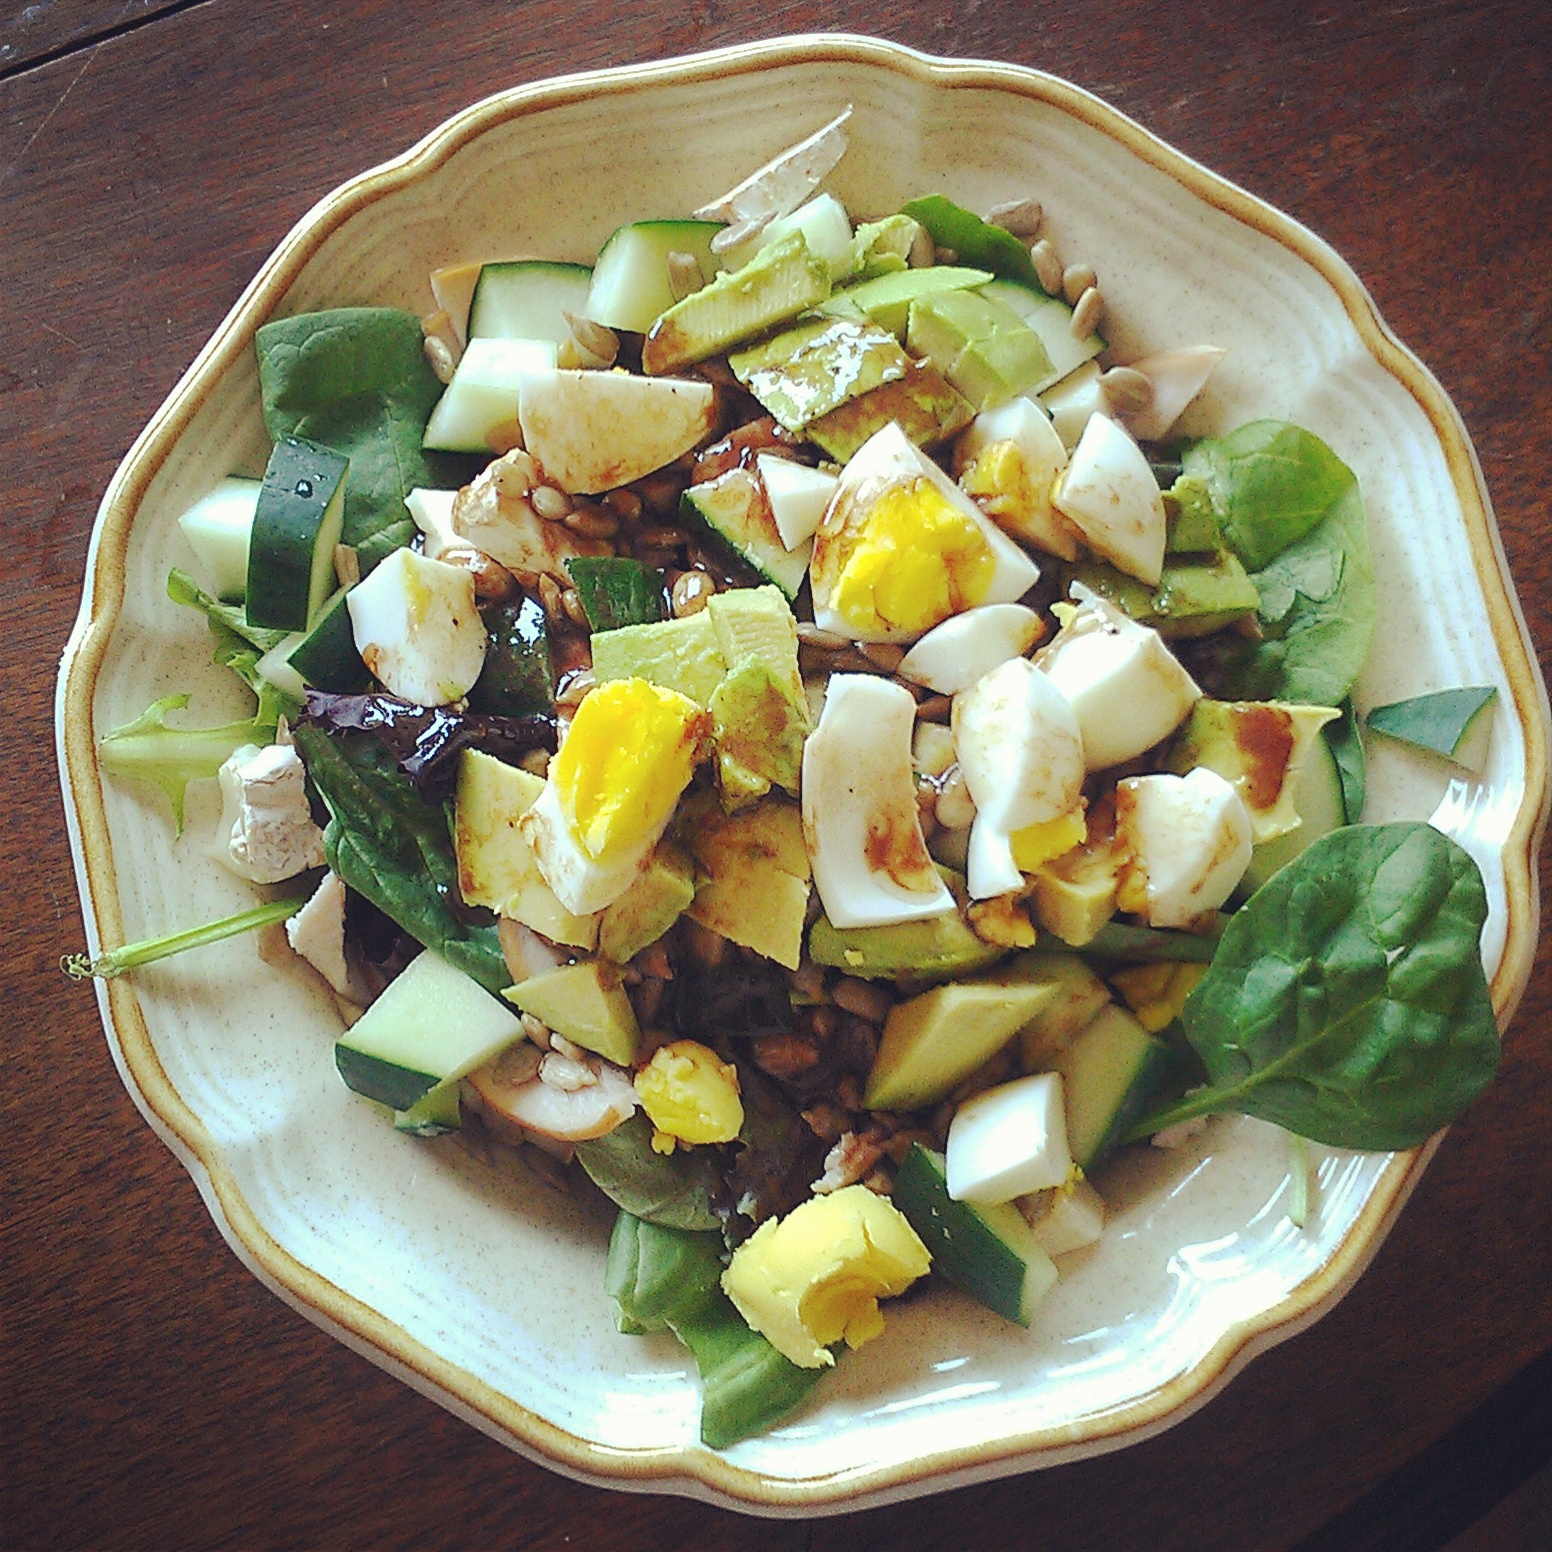 salad with cucumber, avocado, olives and soft-boiled eggs